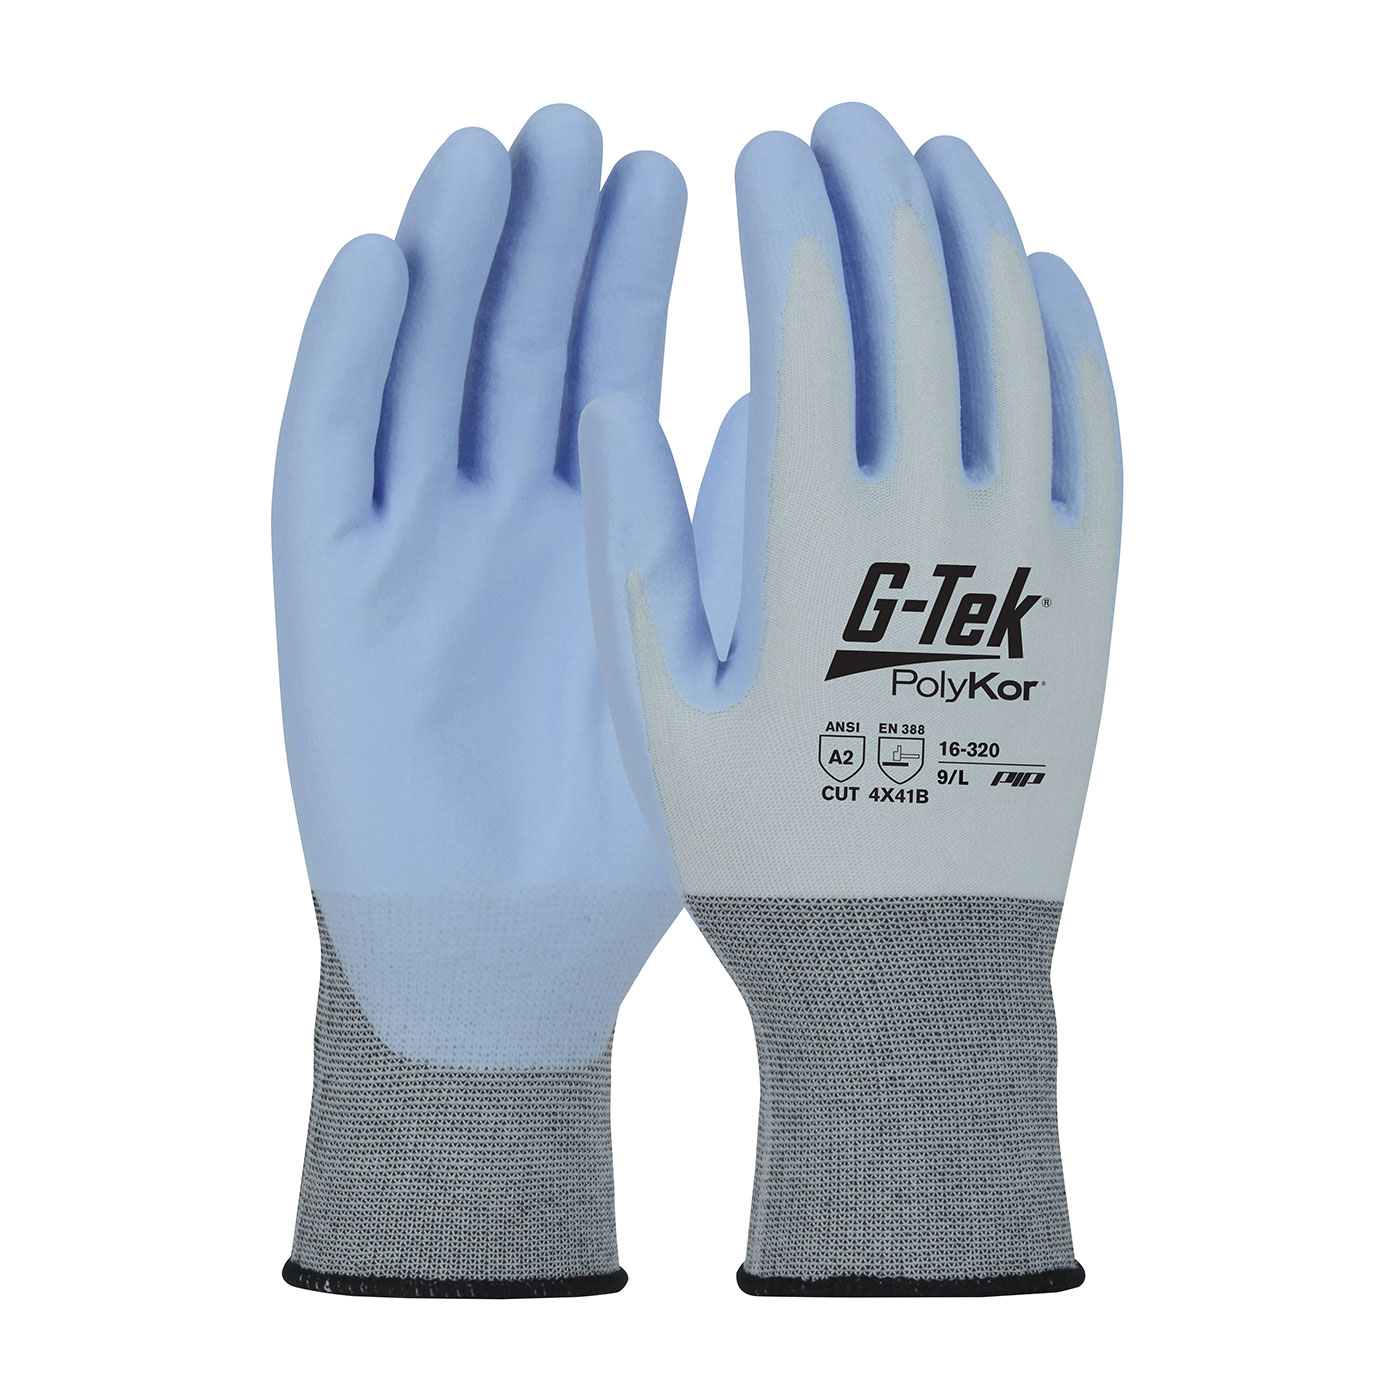 #16-320 PIP® G-Tek® PolyKor® X7™ Seamless Knit X7™ Blended Glove with NeoFoam® Coated Palm & Fingers - Touchscreen Compatible